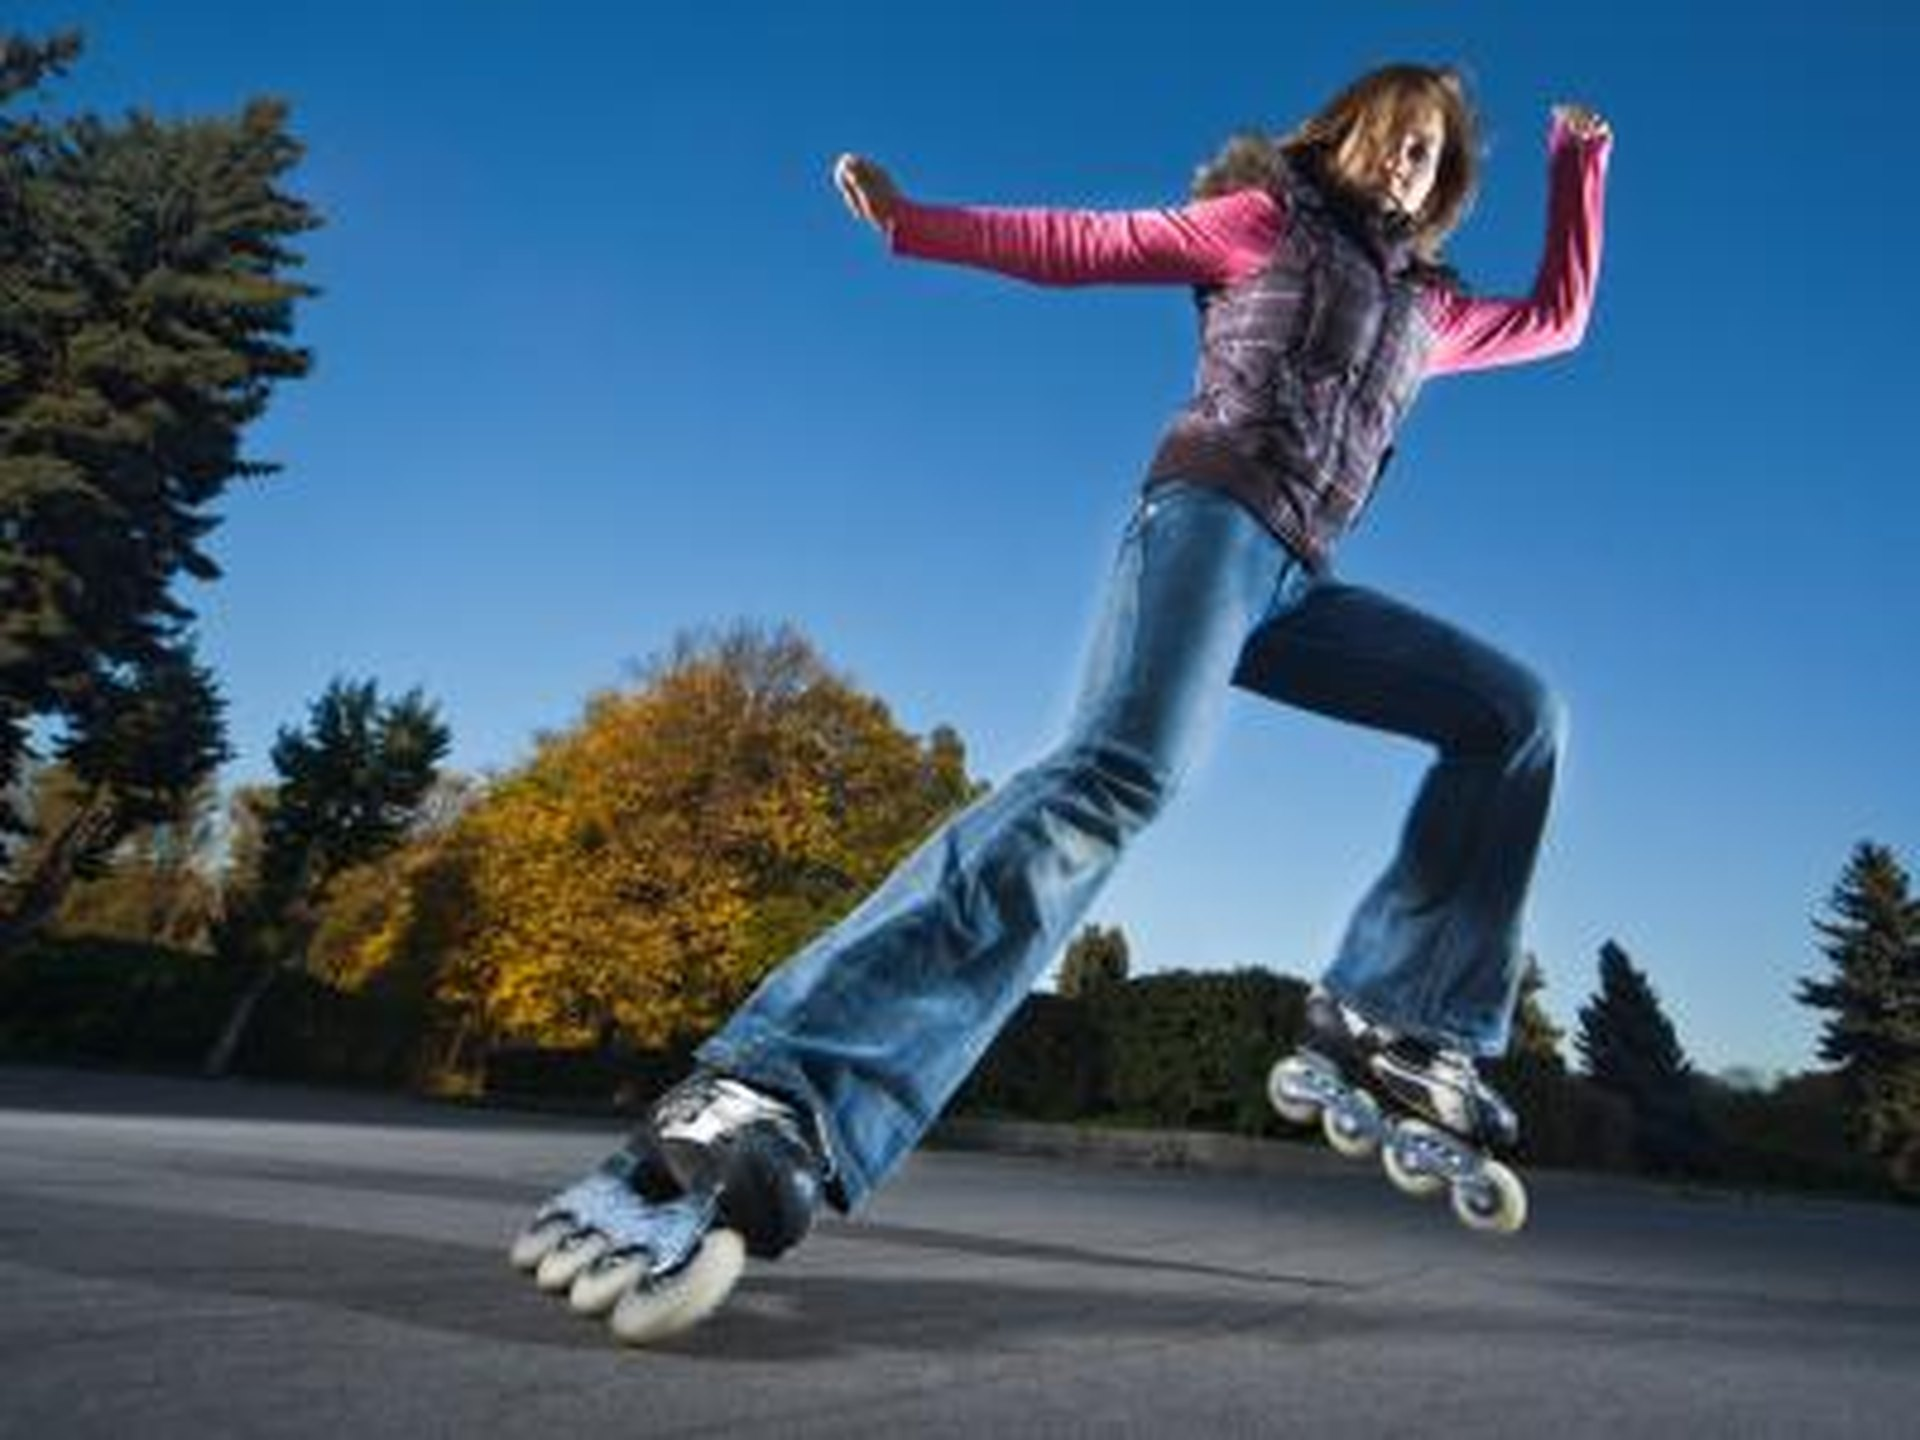 How to learn rollerblading